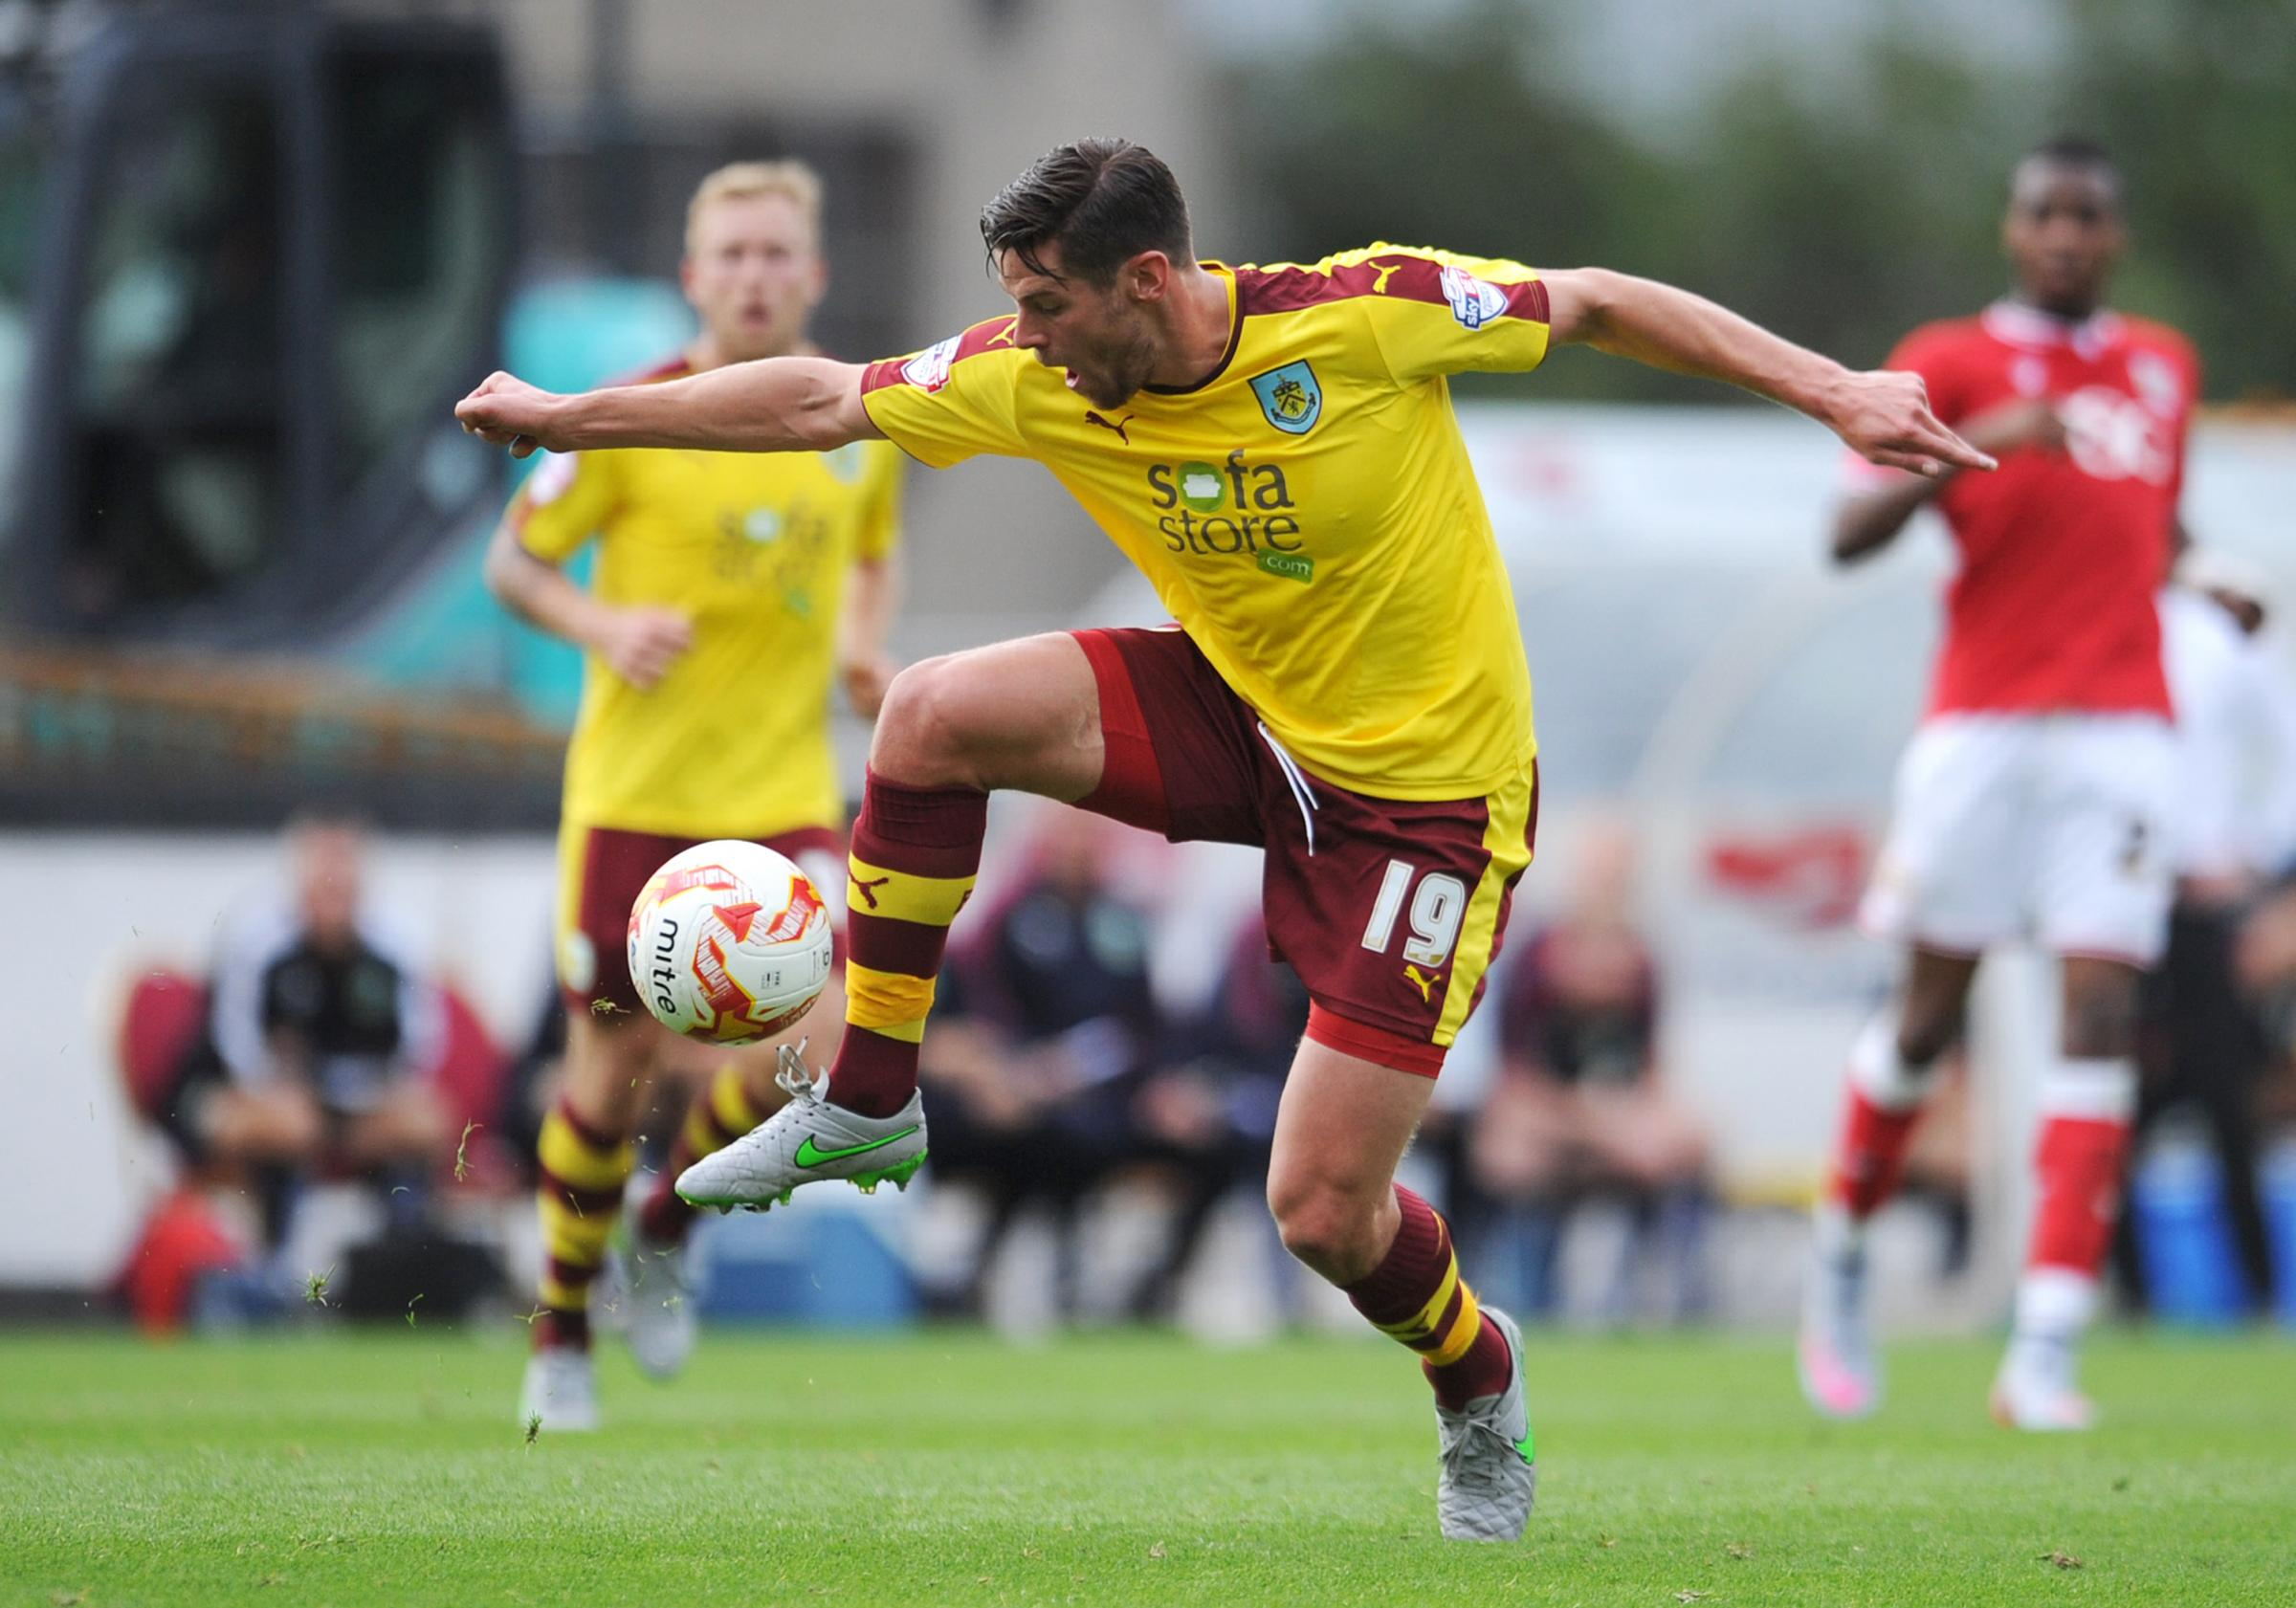 INJURY BLOW: Burnley's Lukas Jutkiewicz in action during the victory over Bristol City on Saturday